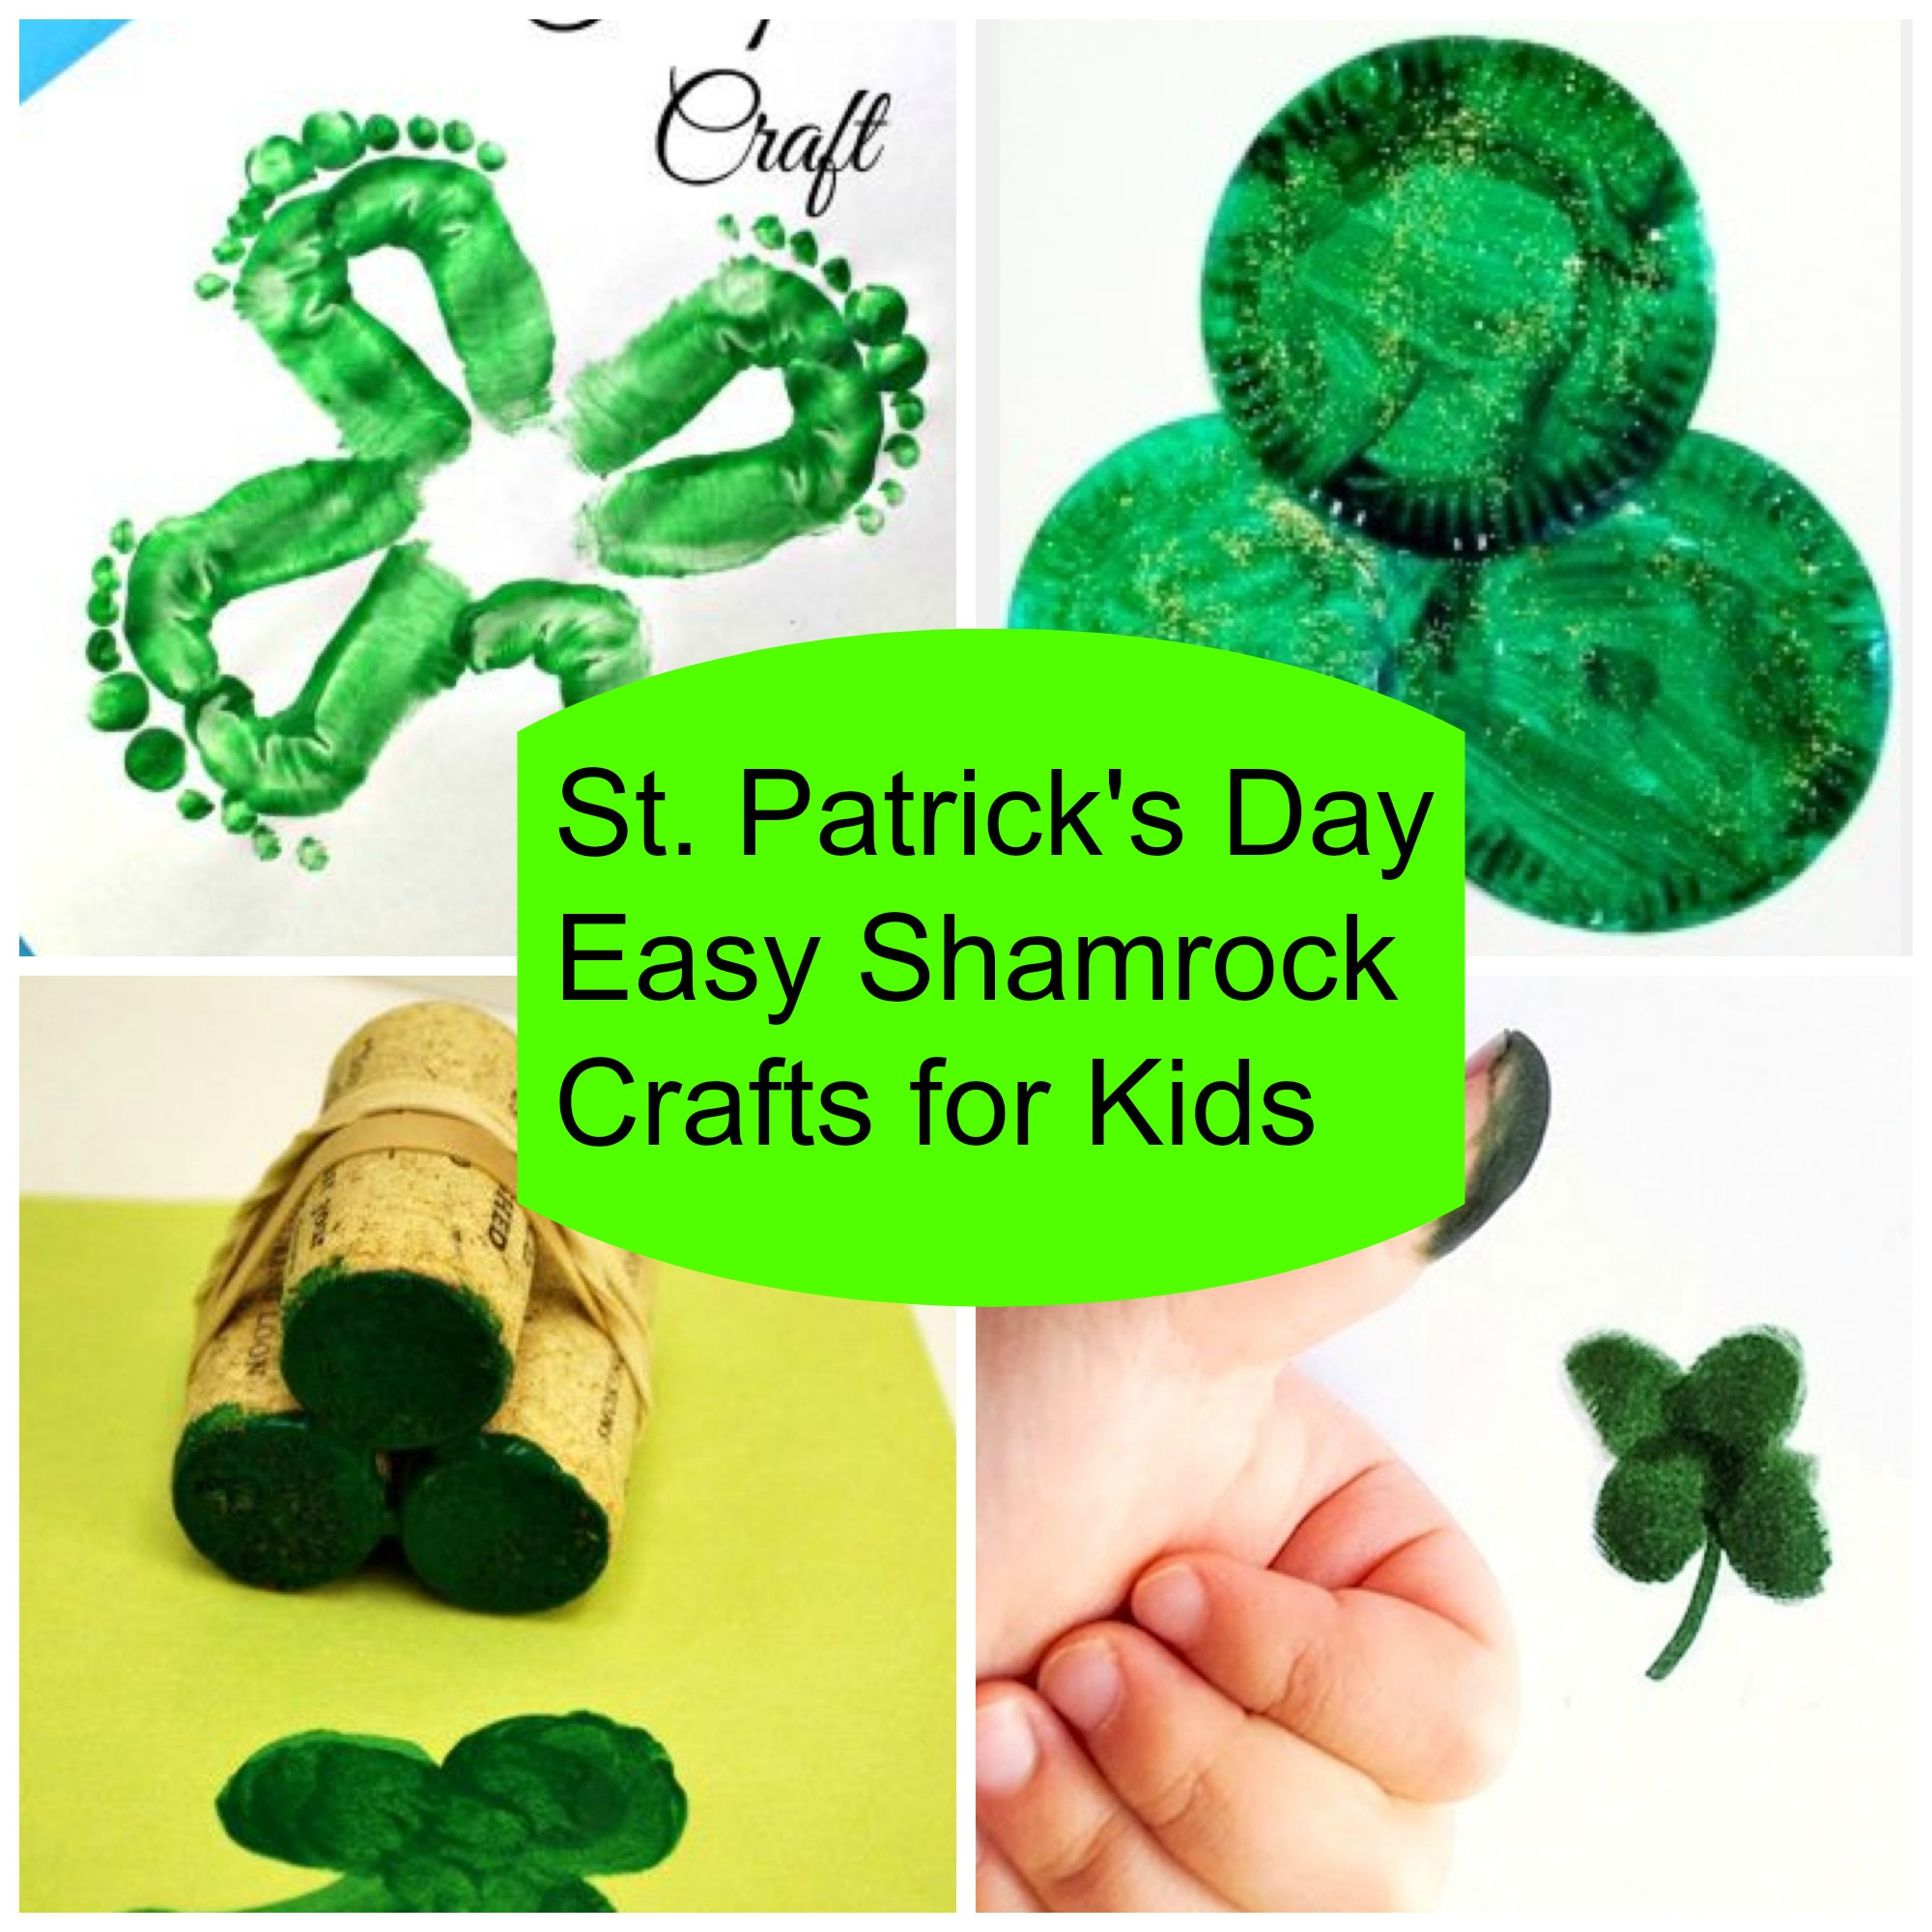 St pattys day crafts - 5 Easy Shamrock St Patrick S Day Crafts For Kids